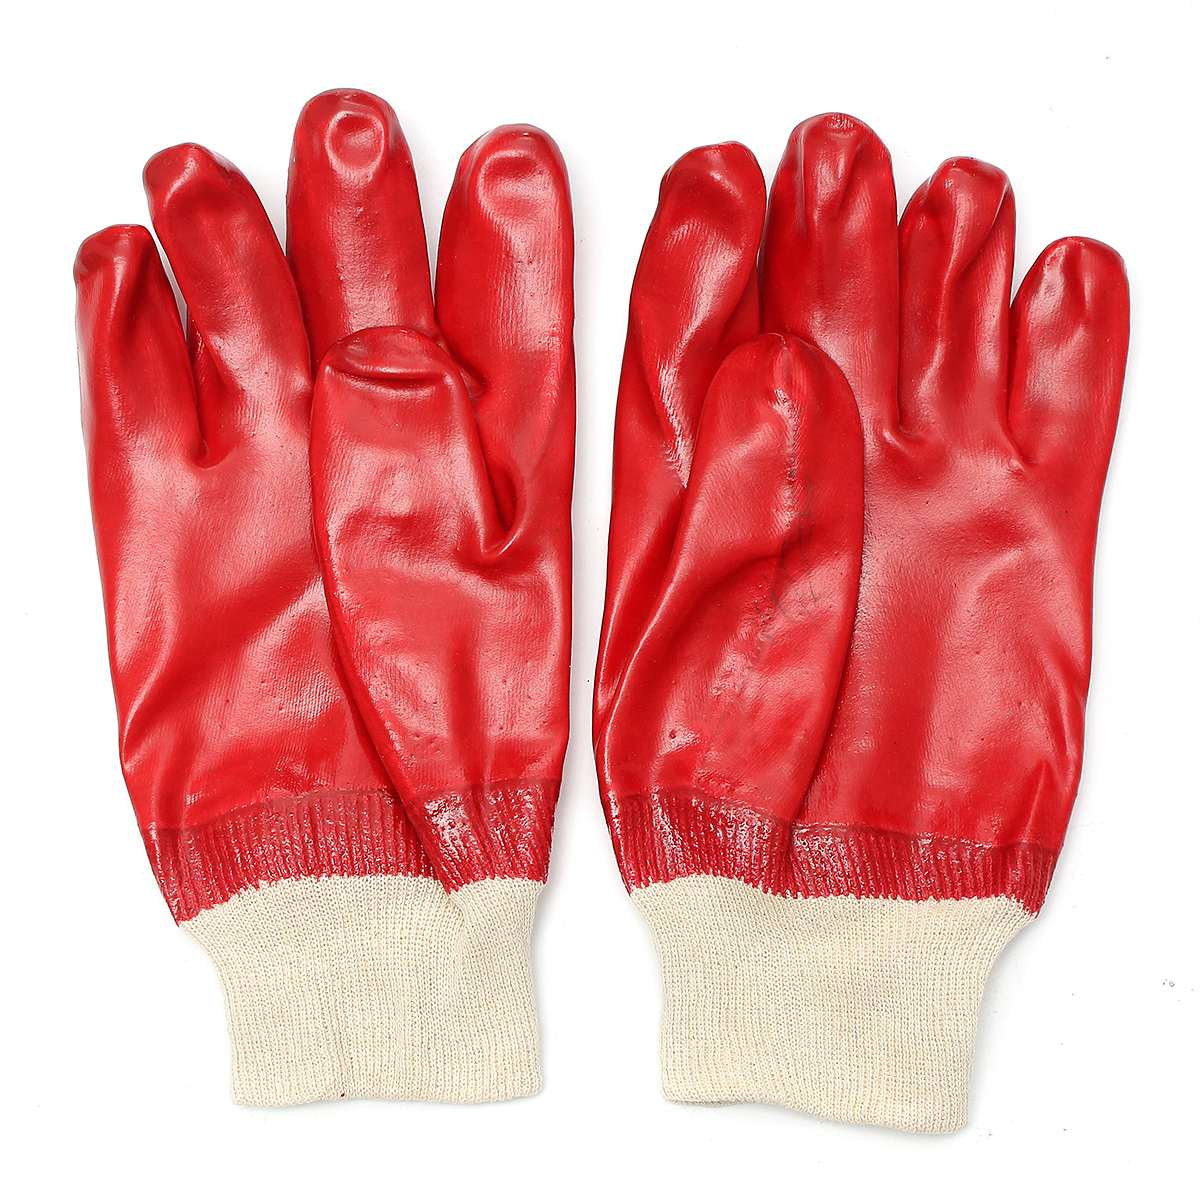 Safurance 12 Pairs PVC Gloves Knitted Wrist Red Chemical Safety Anti skid Waterproof Workplace Safety Hand Protection new safurance 1 pairs long cuff soft